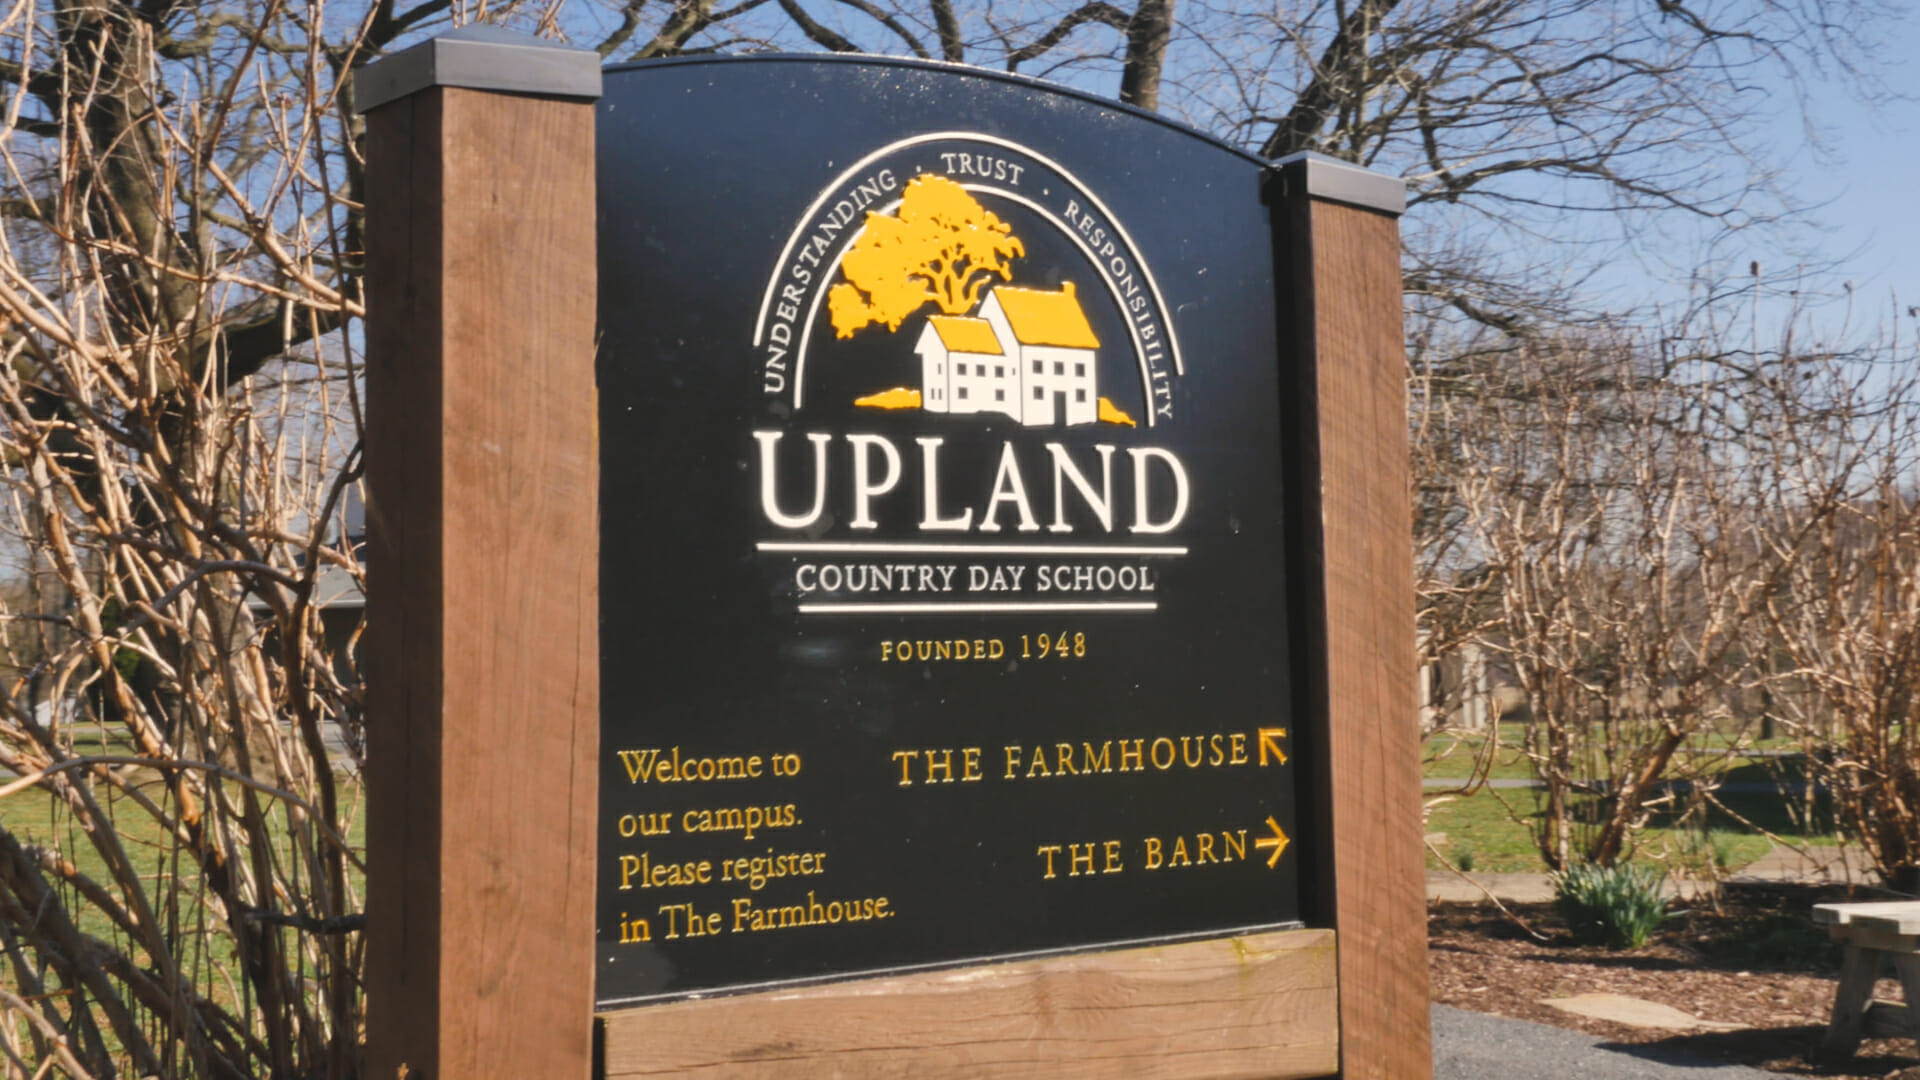 Upland Country Day School General Admissions Video